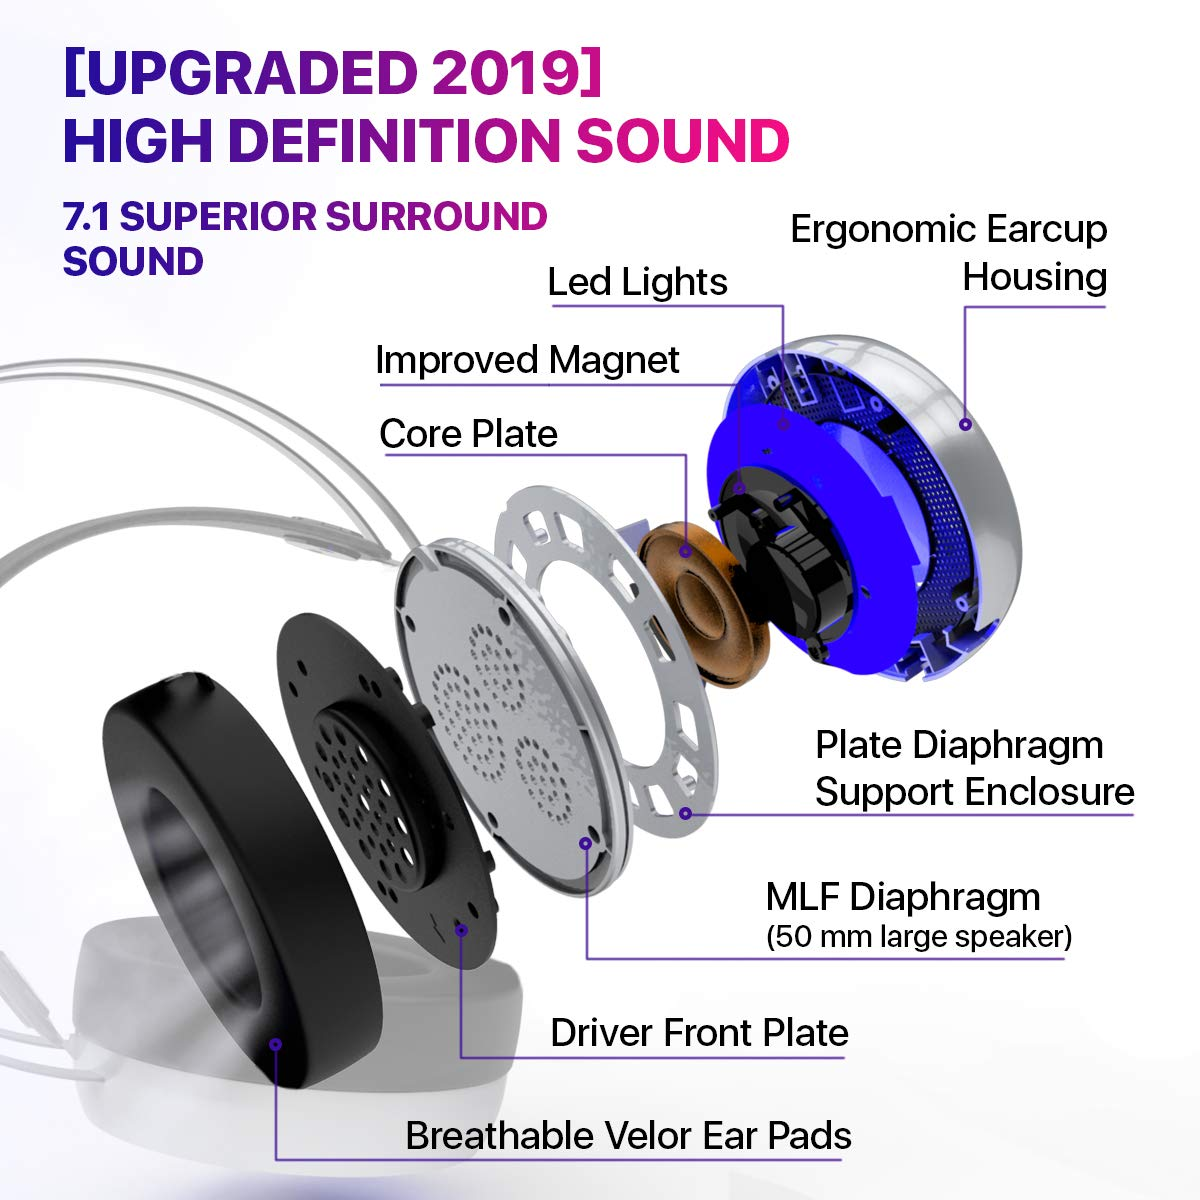 [Newest 2019] Gaming Headset for Xbox One, S, PS4, PC with LED Soft Breathing Earmuffs, Adjustable Microphone, Comfortable Mute & Volume Control, 3.5mm Adapter for Laptop, PS3, Nintendo by TBI Pro (Image #2)